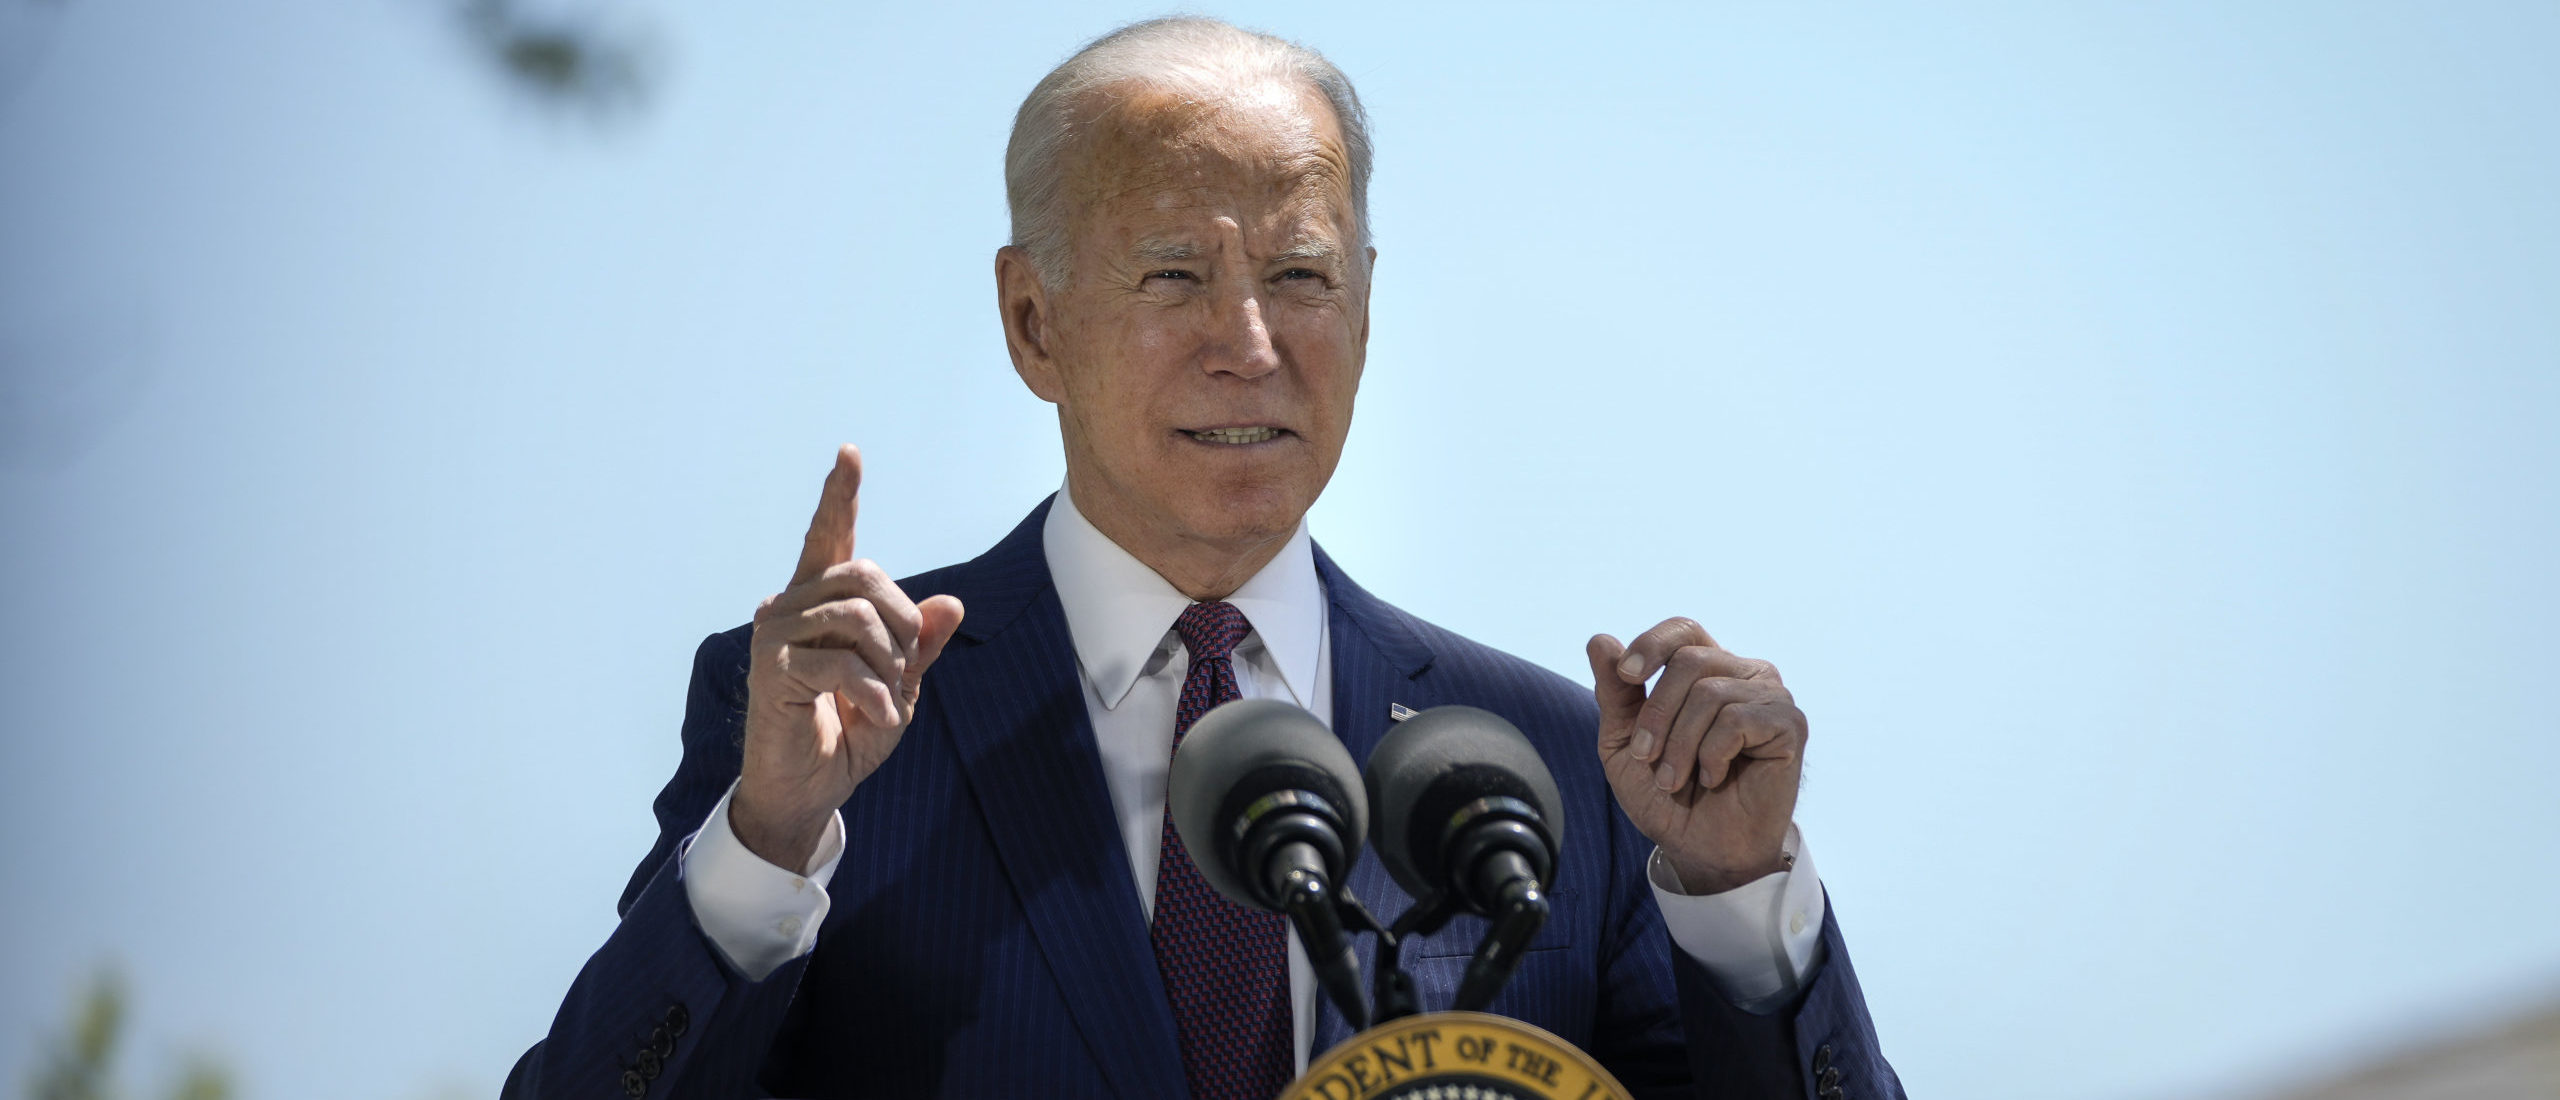 U.S. President Joe Biden speaks about updated CDC mask guidance on the North Lawn of the White House on April 27, 2021. (Photo by Drew Angerer/Getty Images)